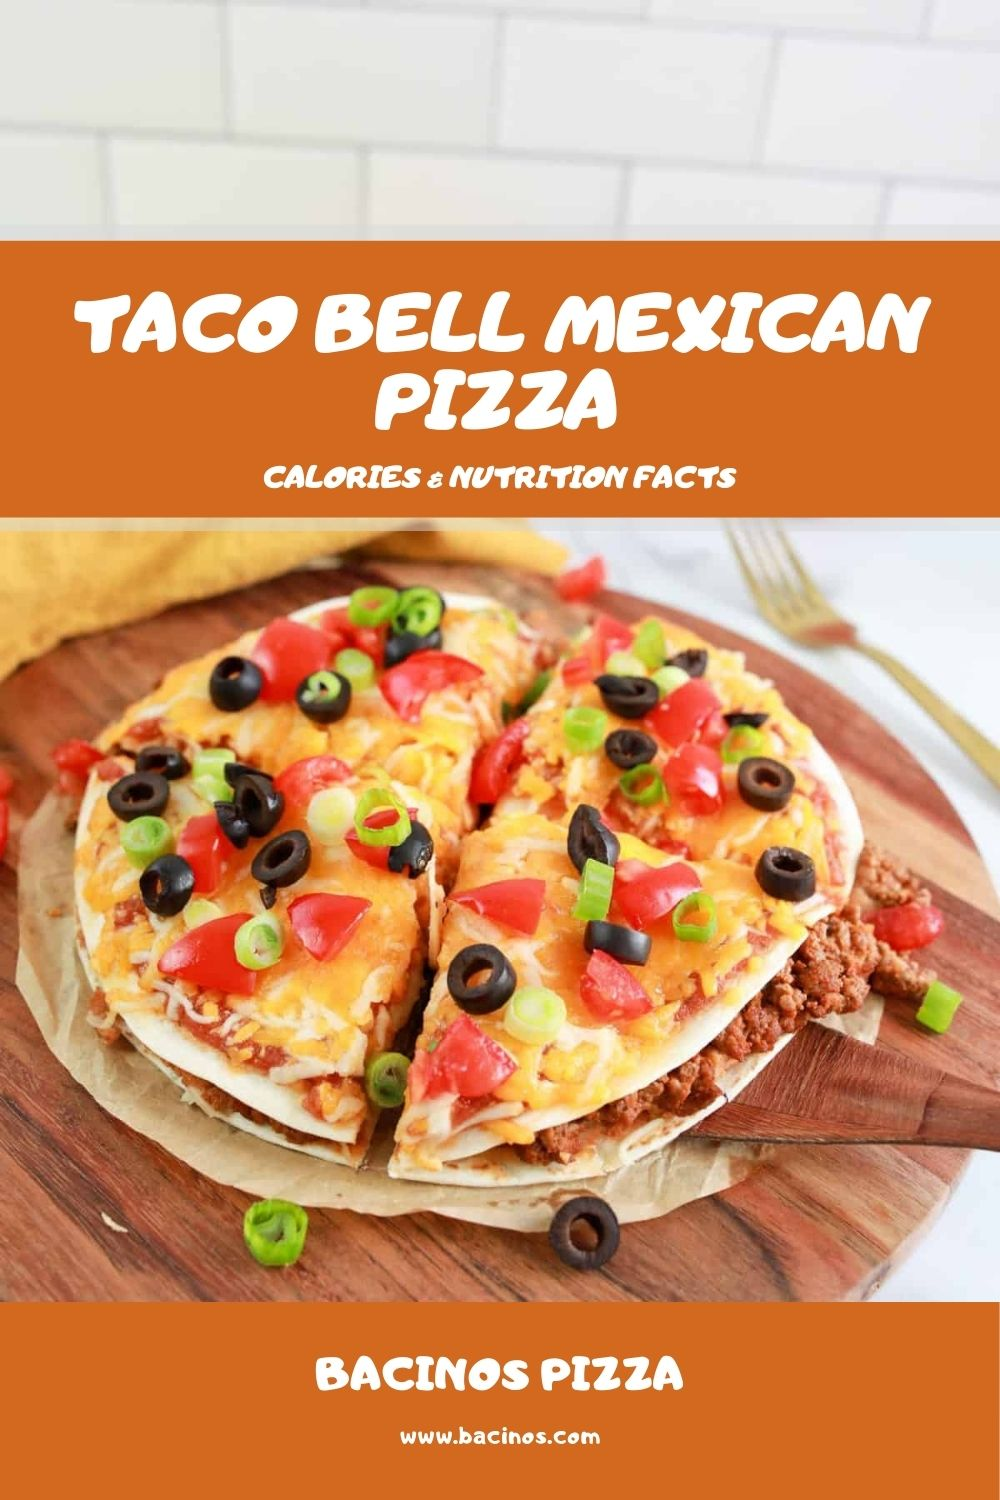 Taco Bell Mexican Pizza Calories & Nutrition Facts (Chart)